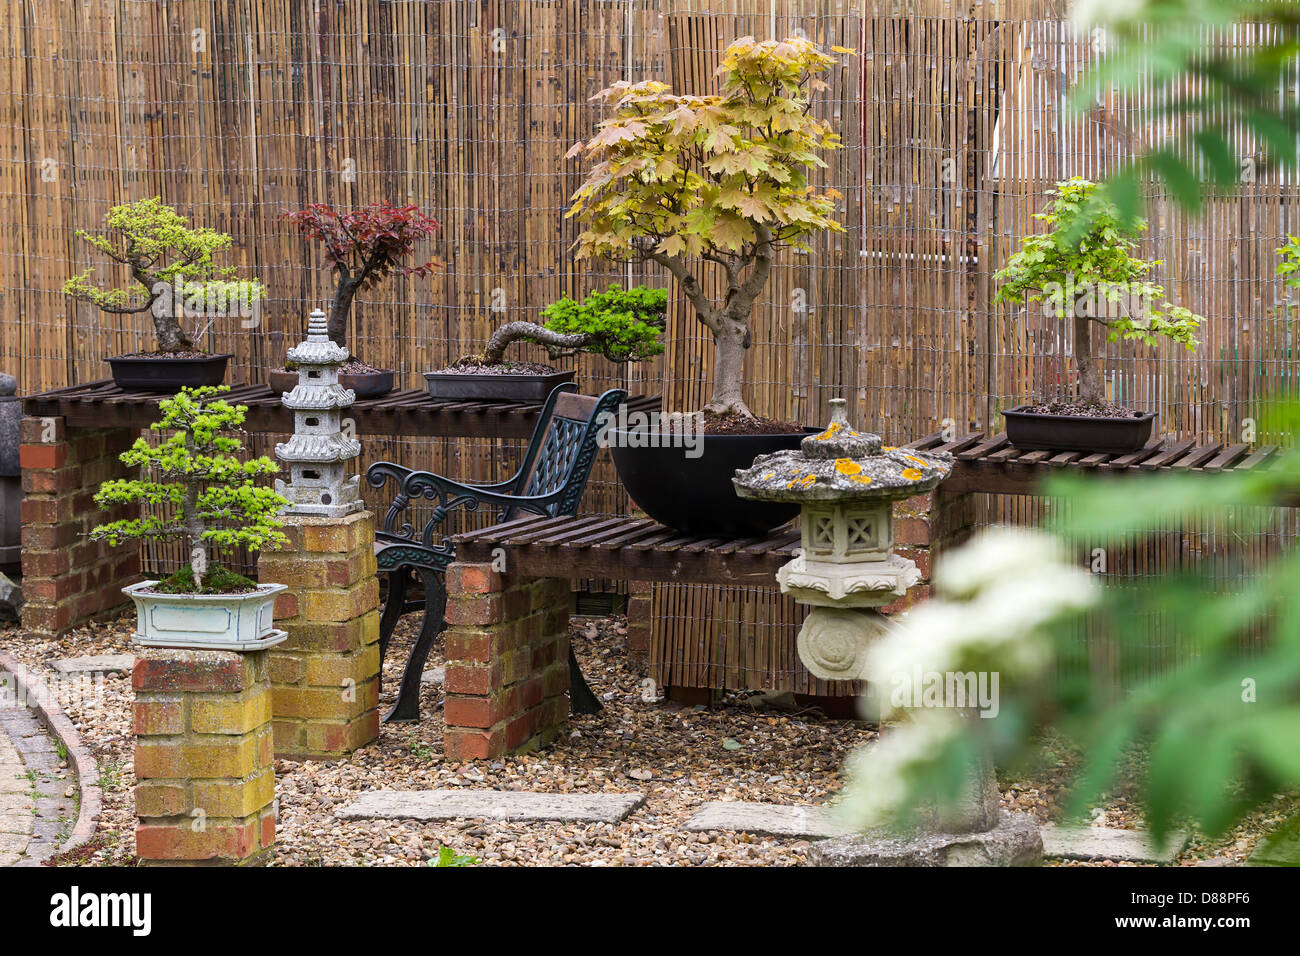 Bonsai Display Stock Photos & Bonsai Display Stock Images - Alamy